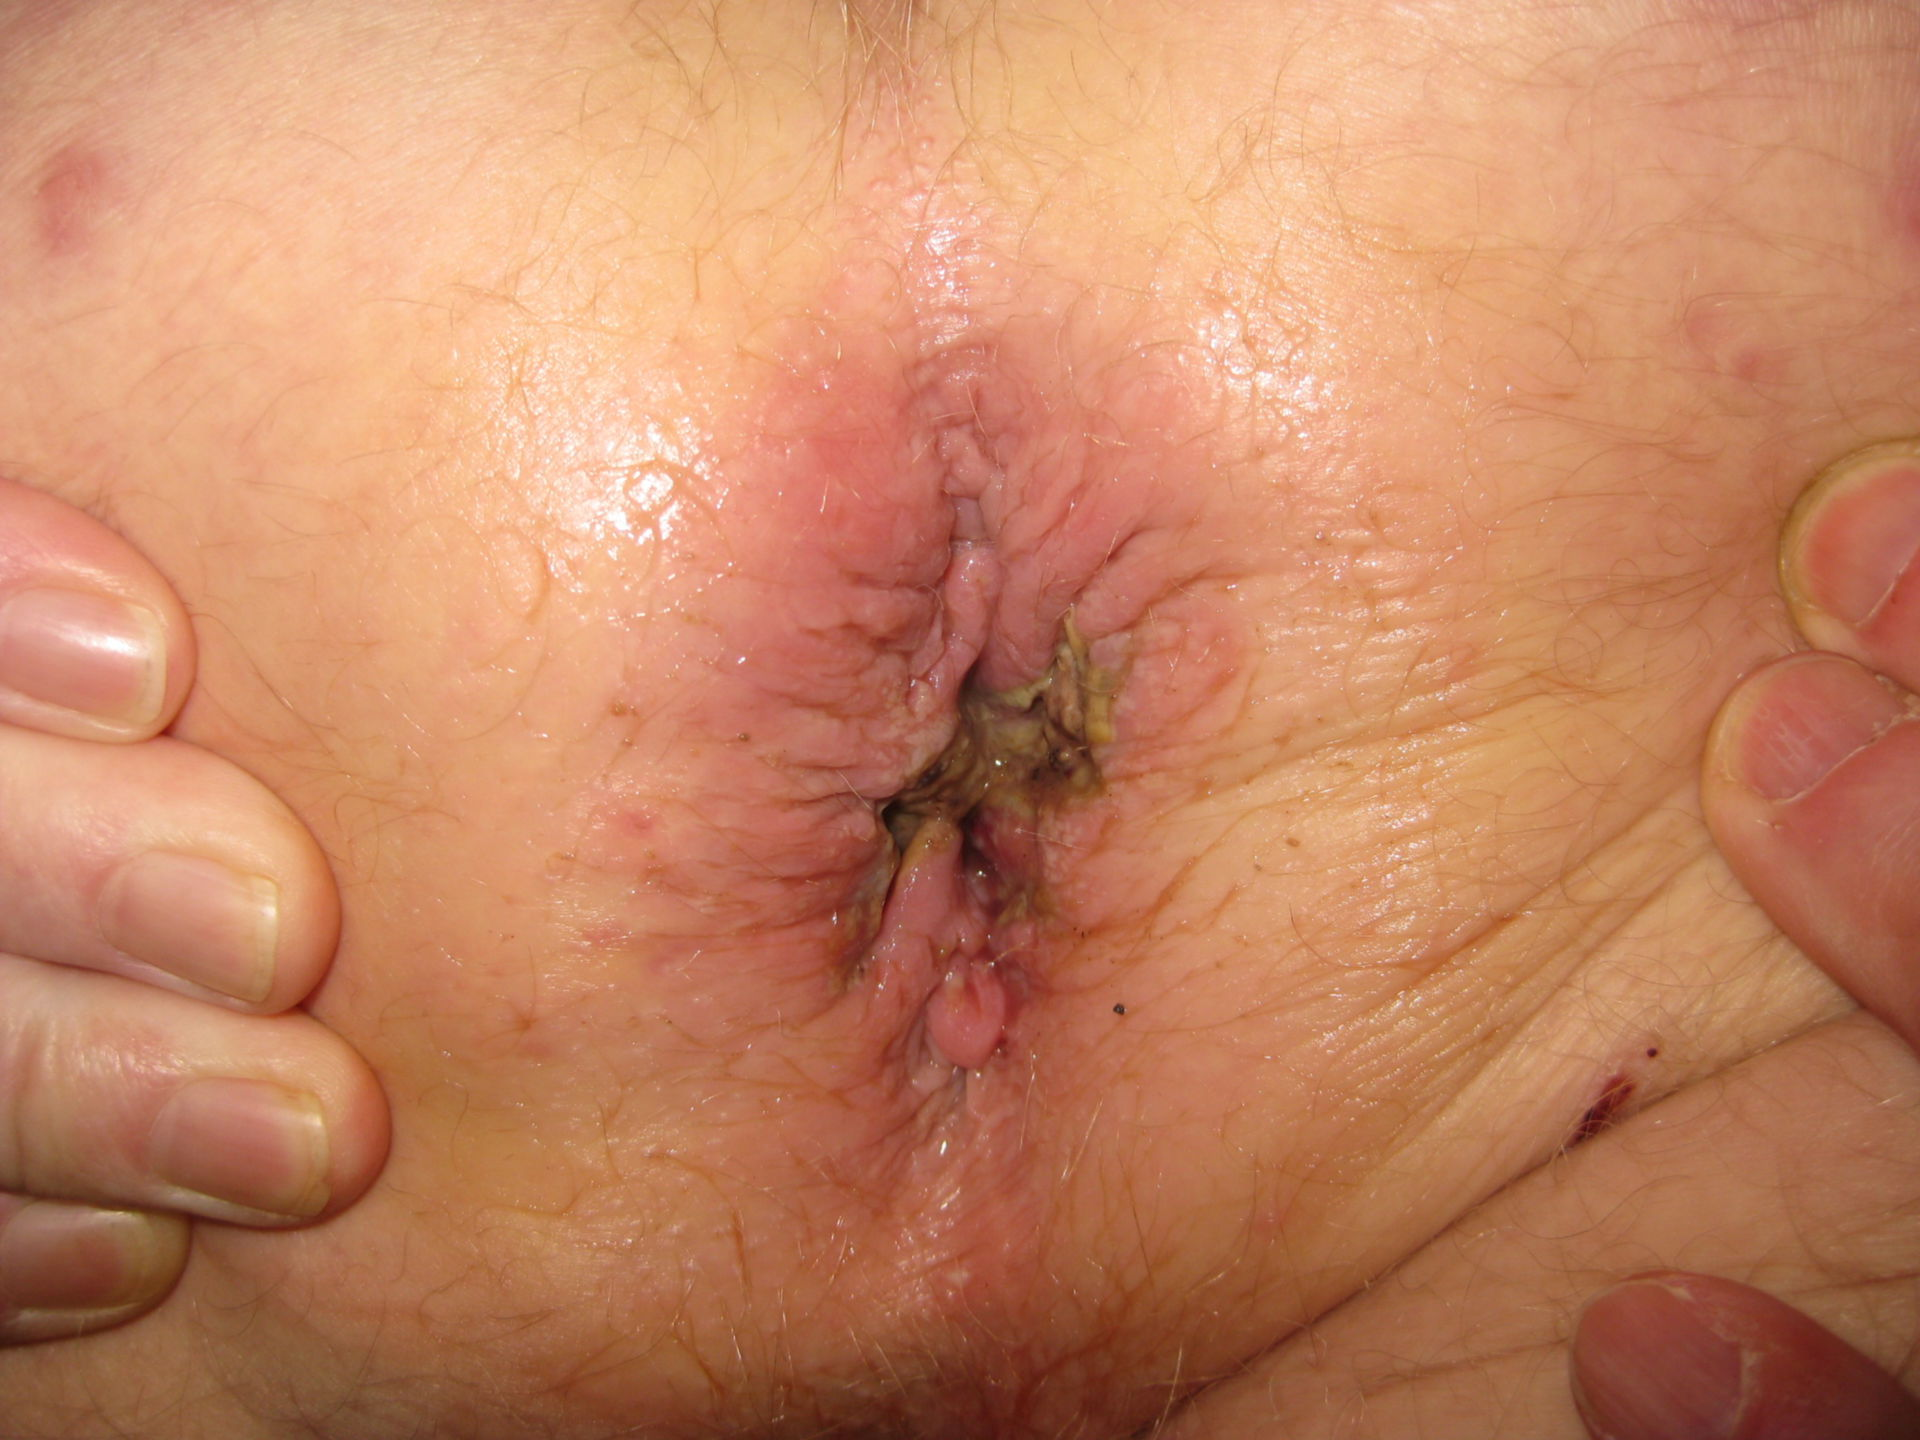 Hemorrhoidectomy - 5 days after surgery